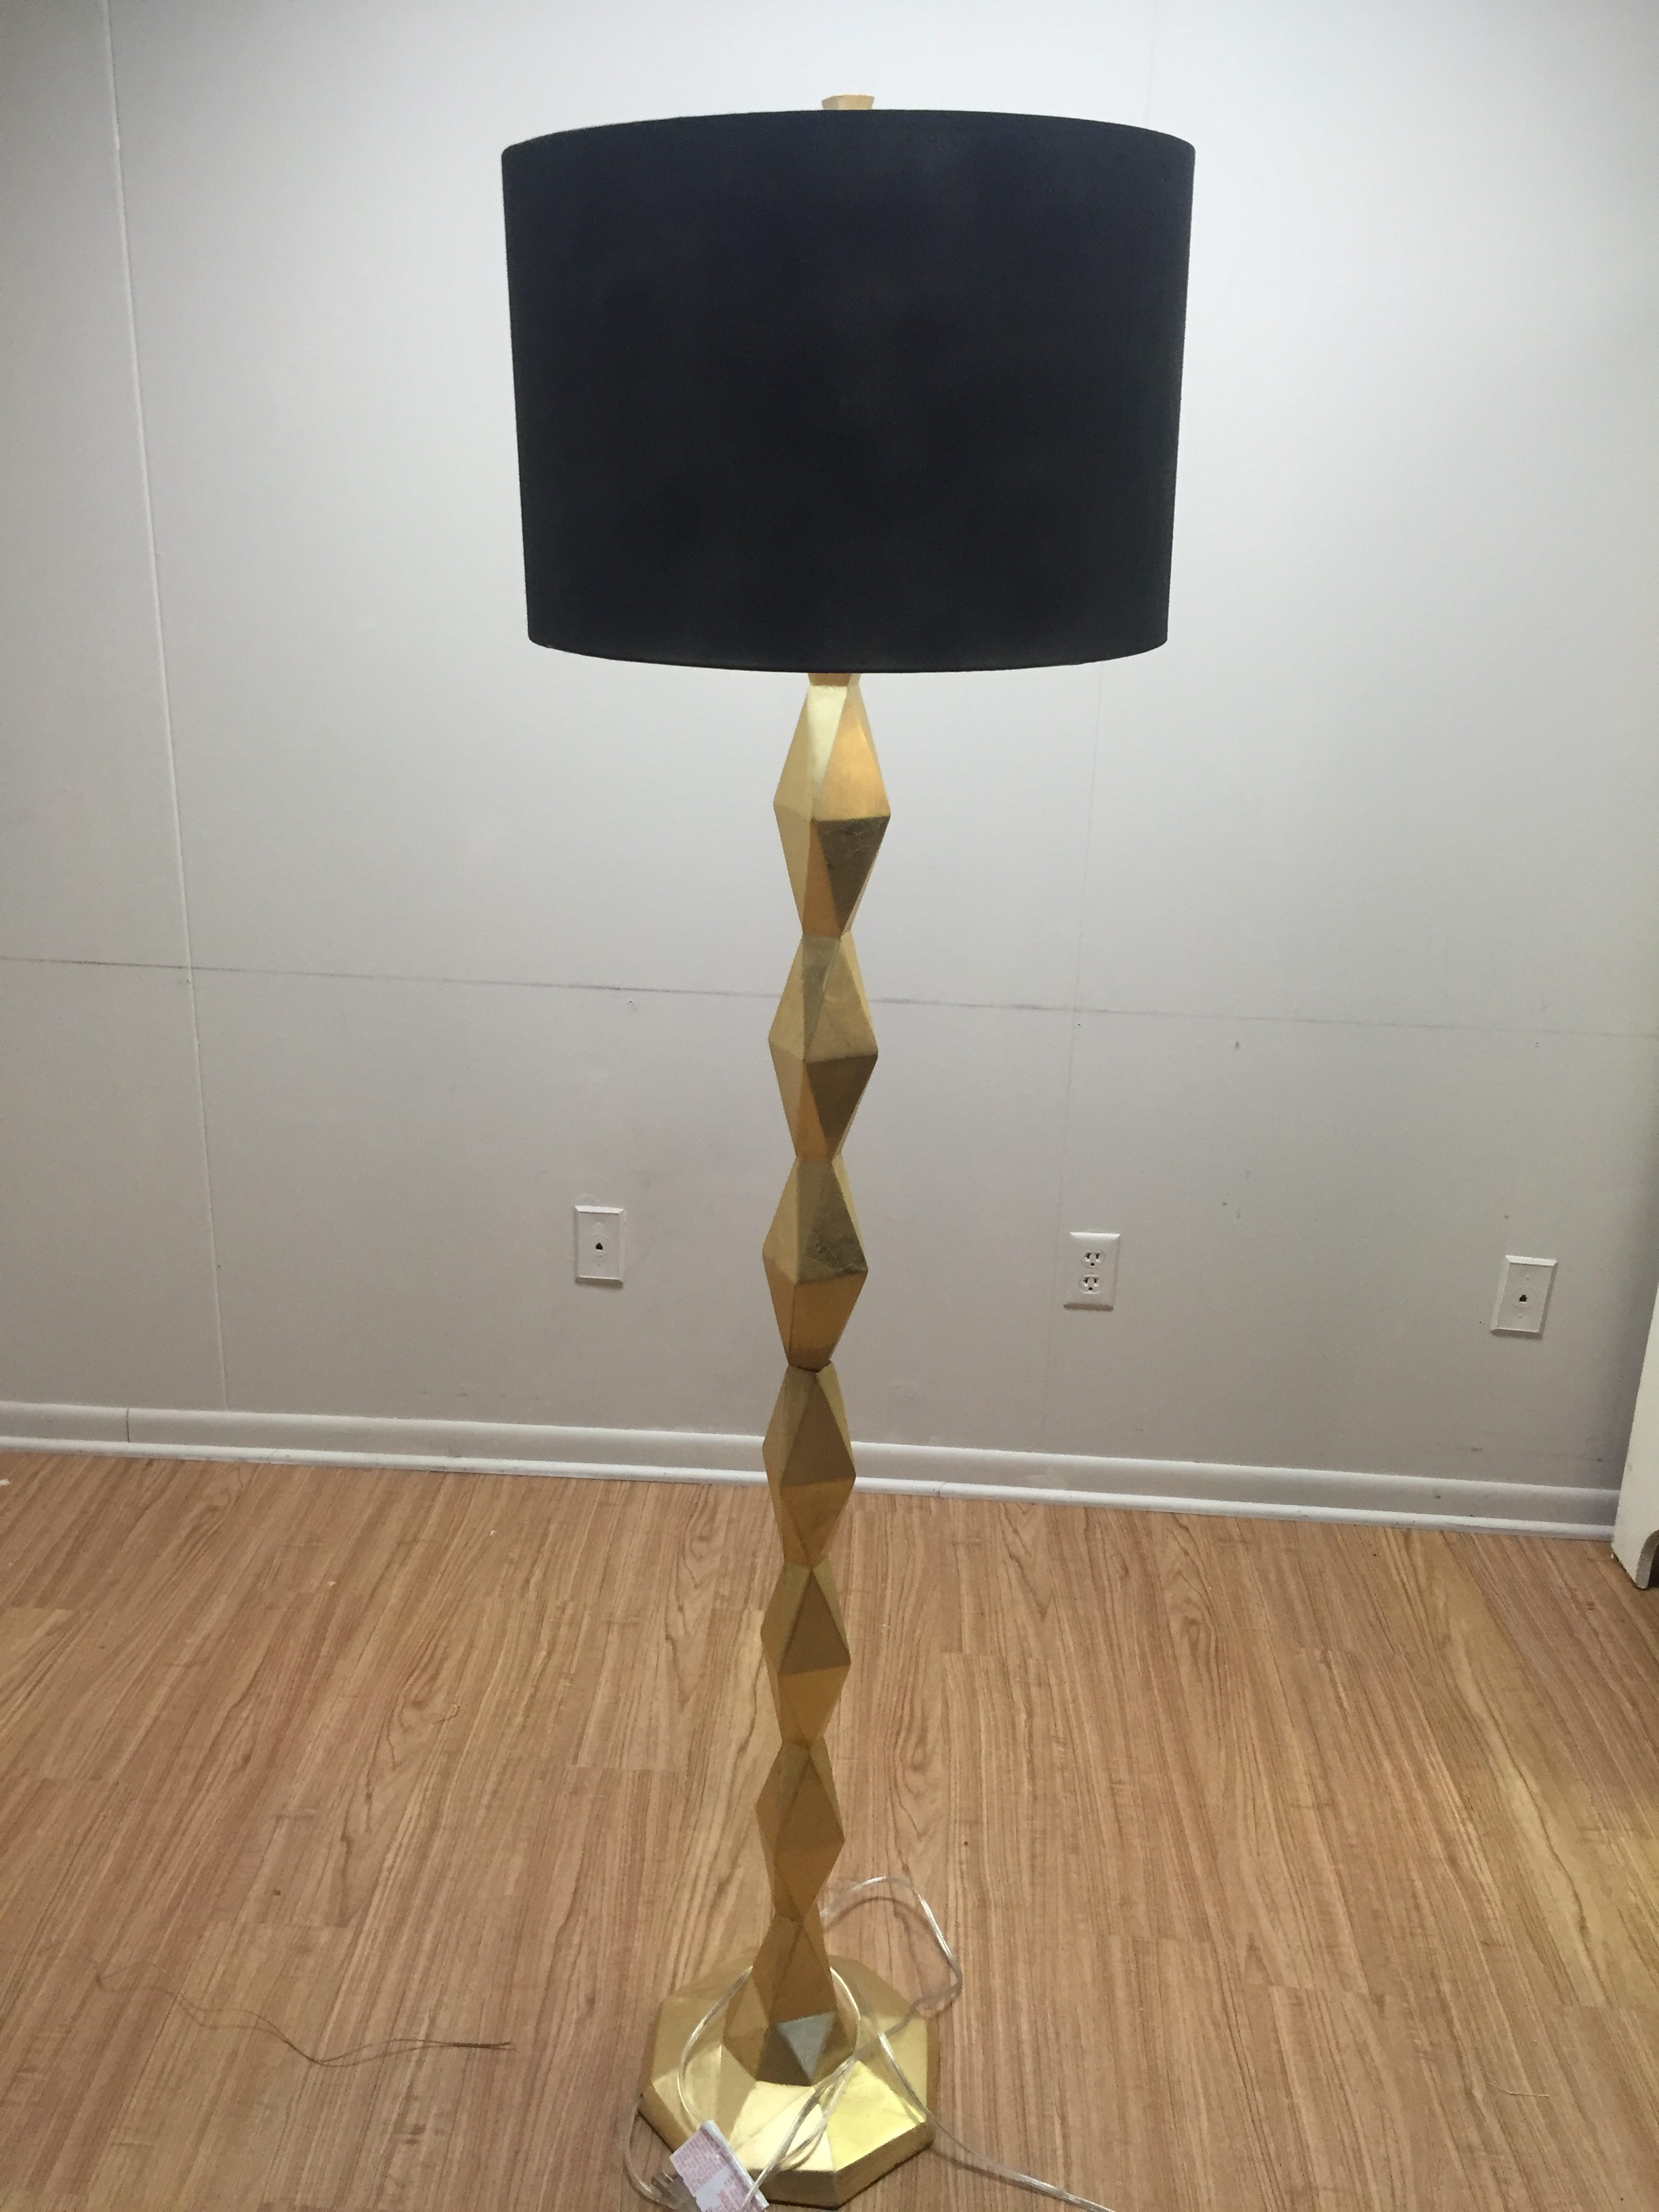 Gold Floor Lamp With Black Shade